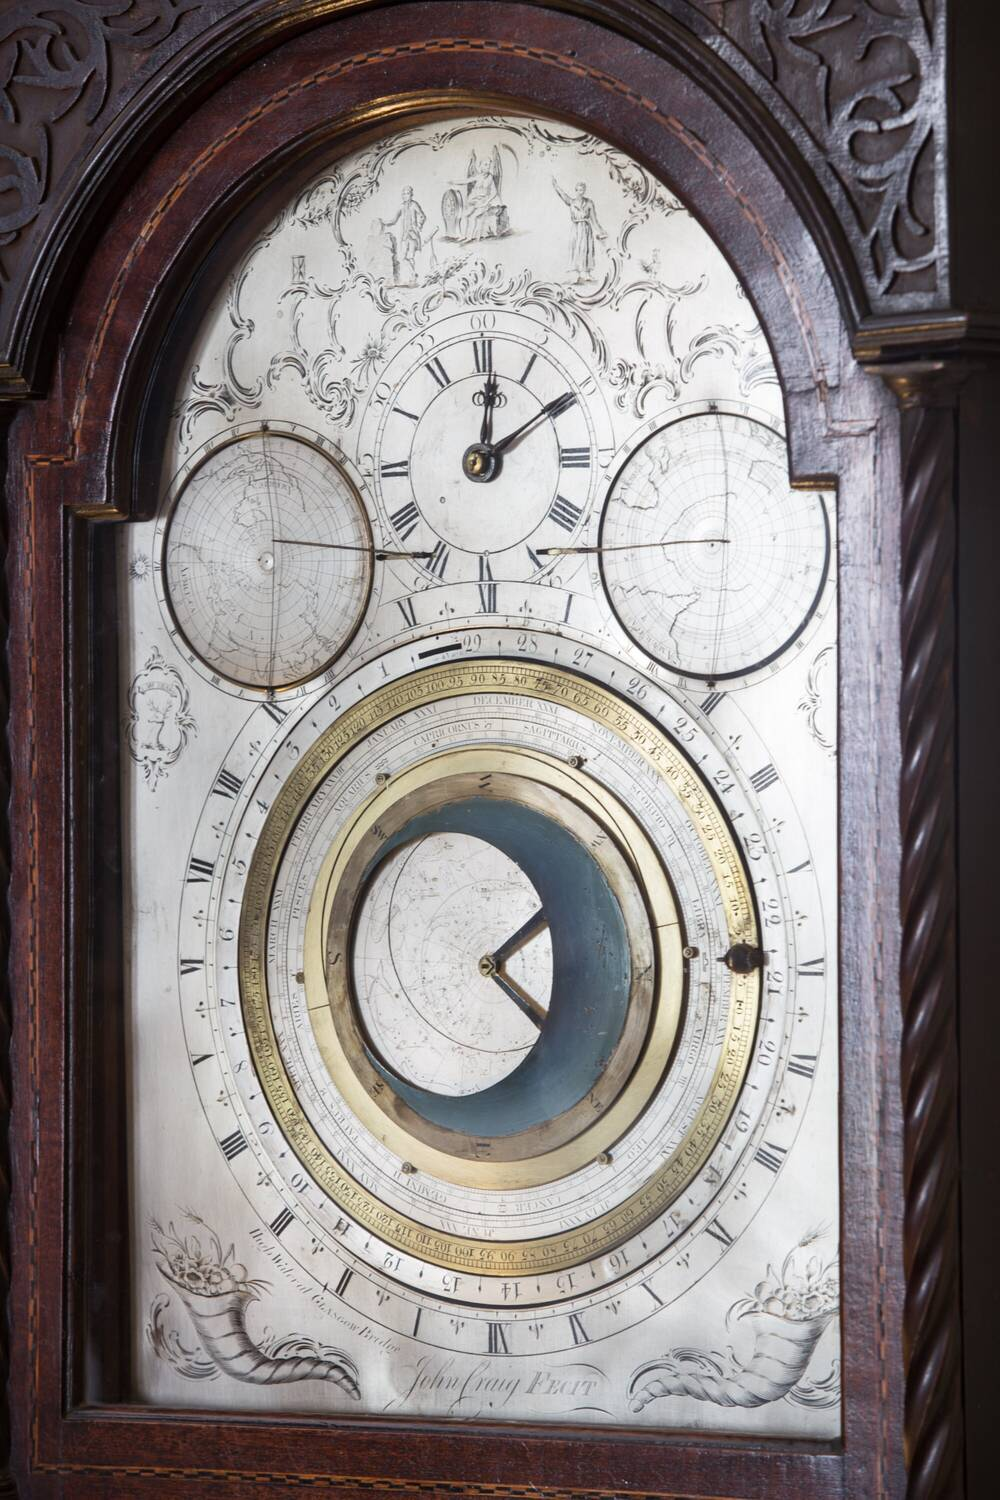 An ornate clock in a dark wood casing. As well as the clock face for telling the time, there are other faces showing seasons and also the northern and southern hemispheres